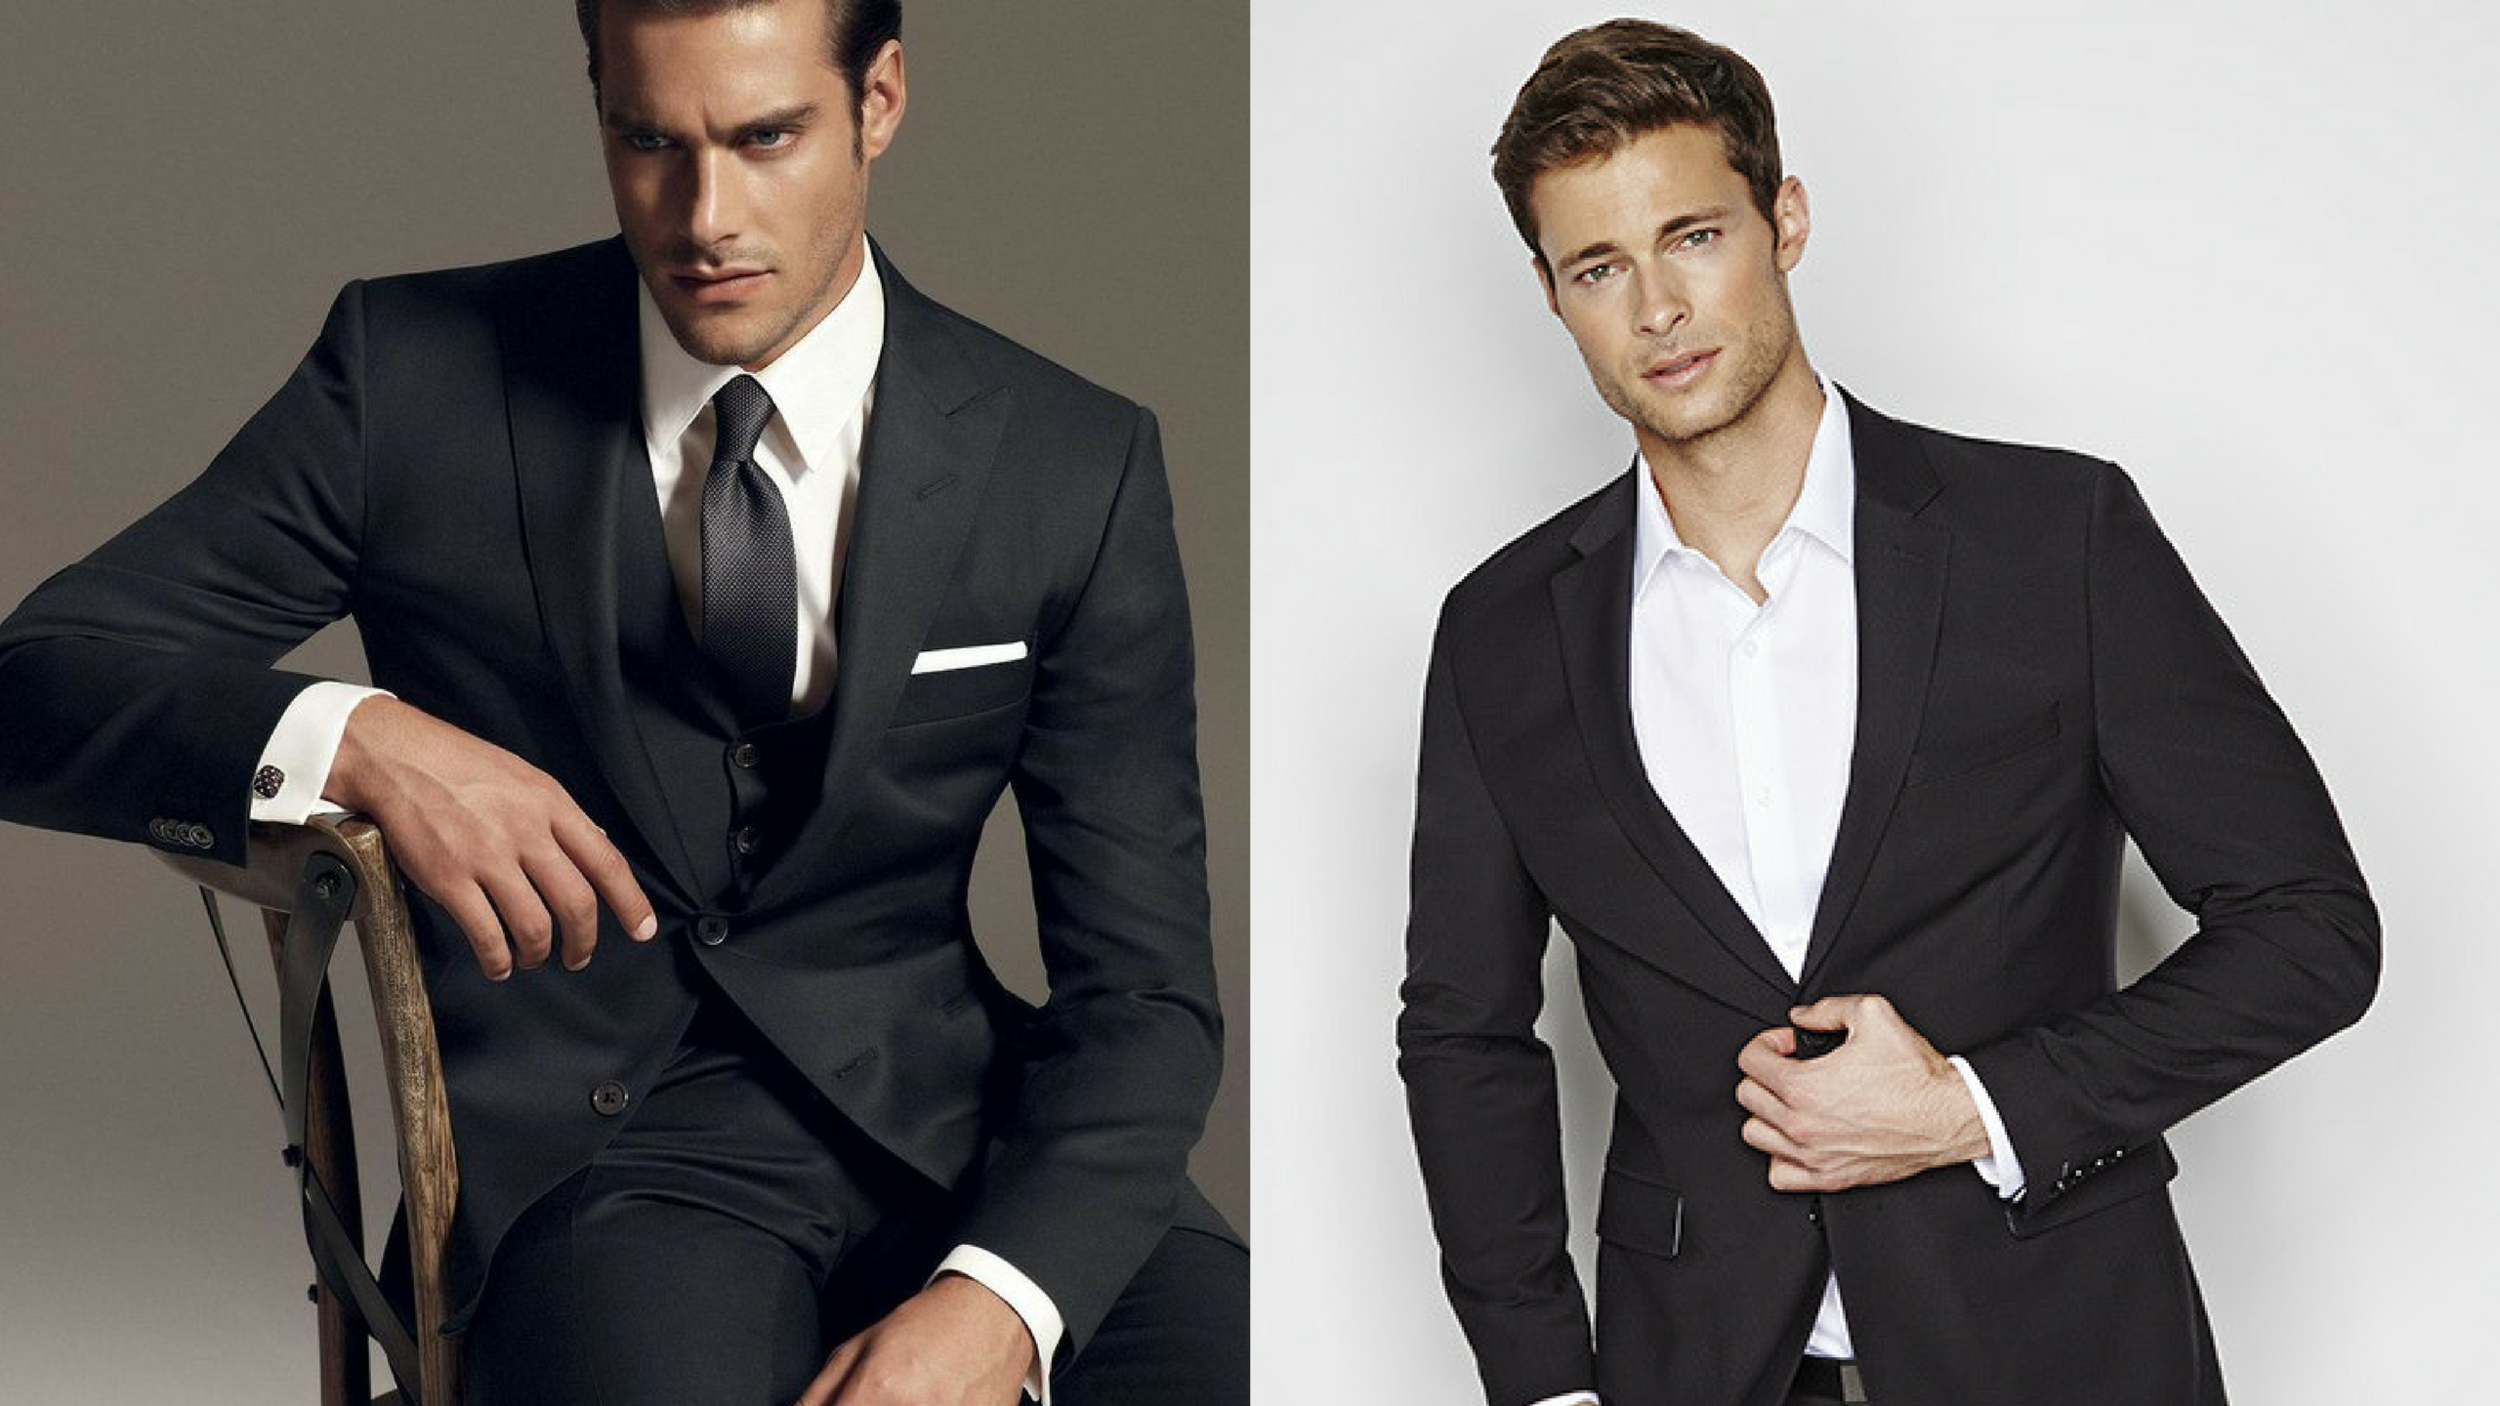 Suits - quality suits from the best brands